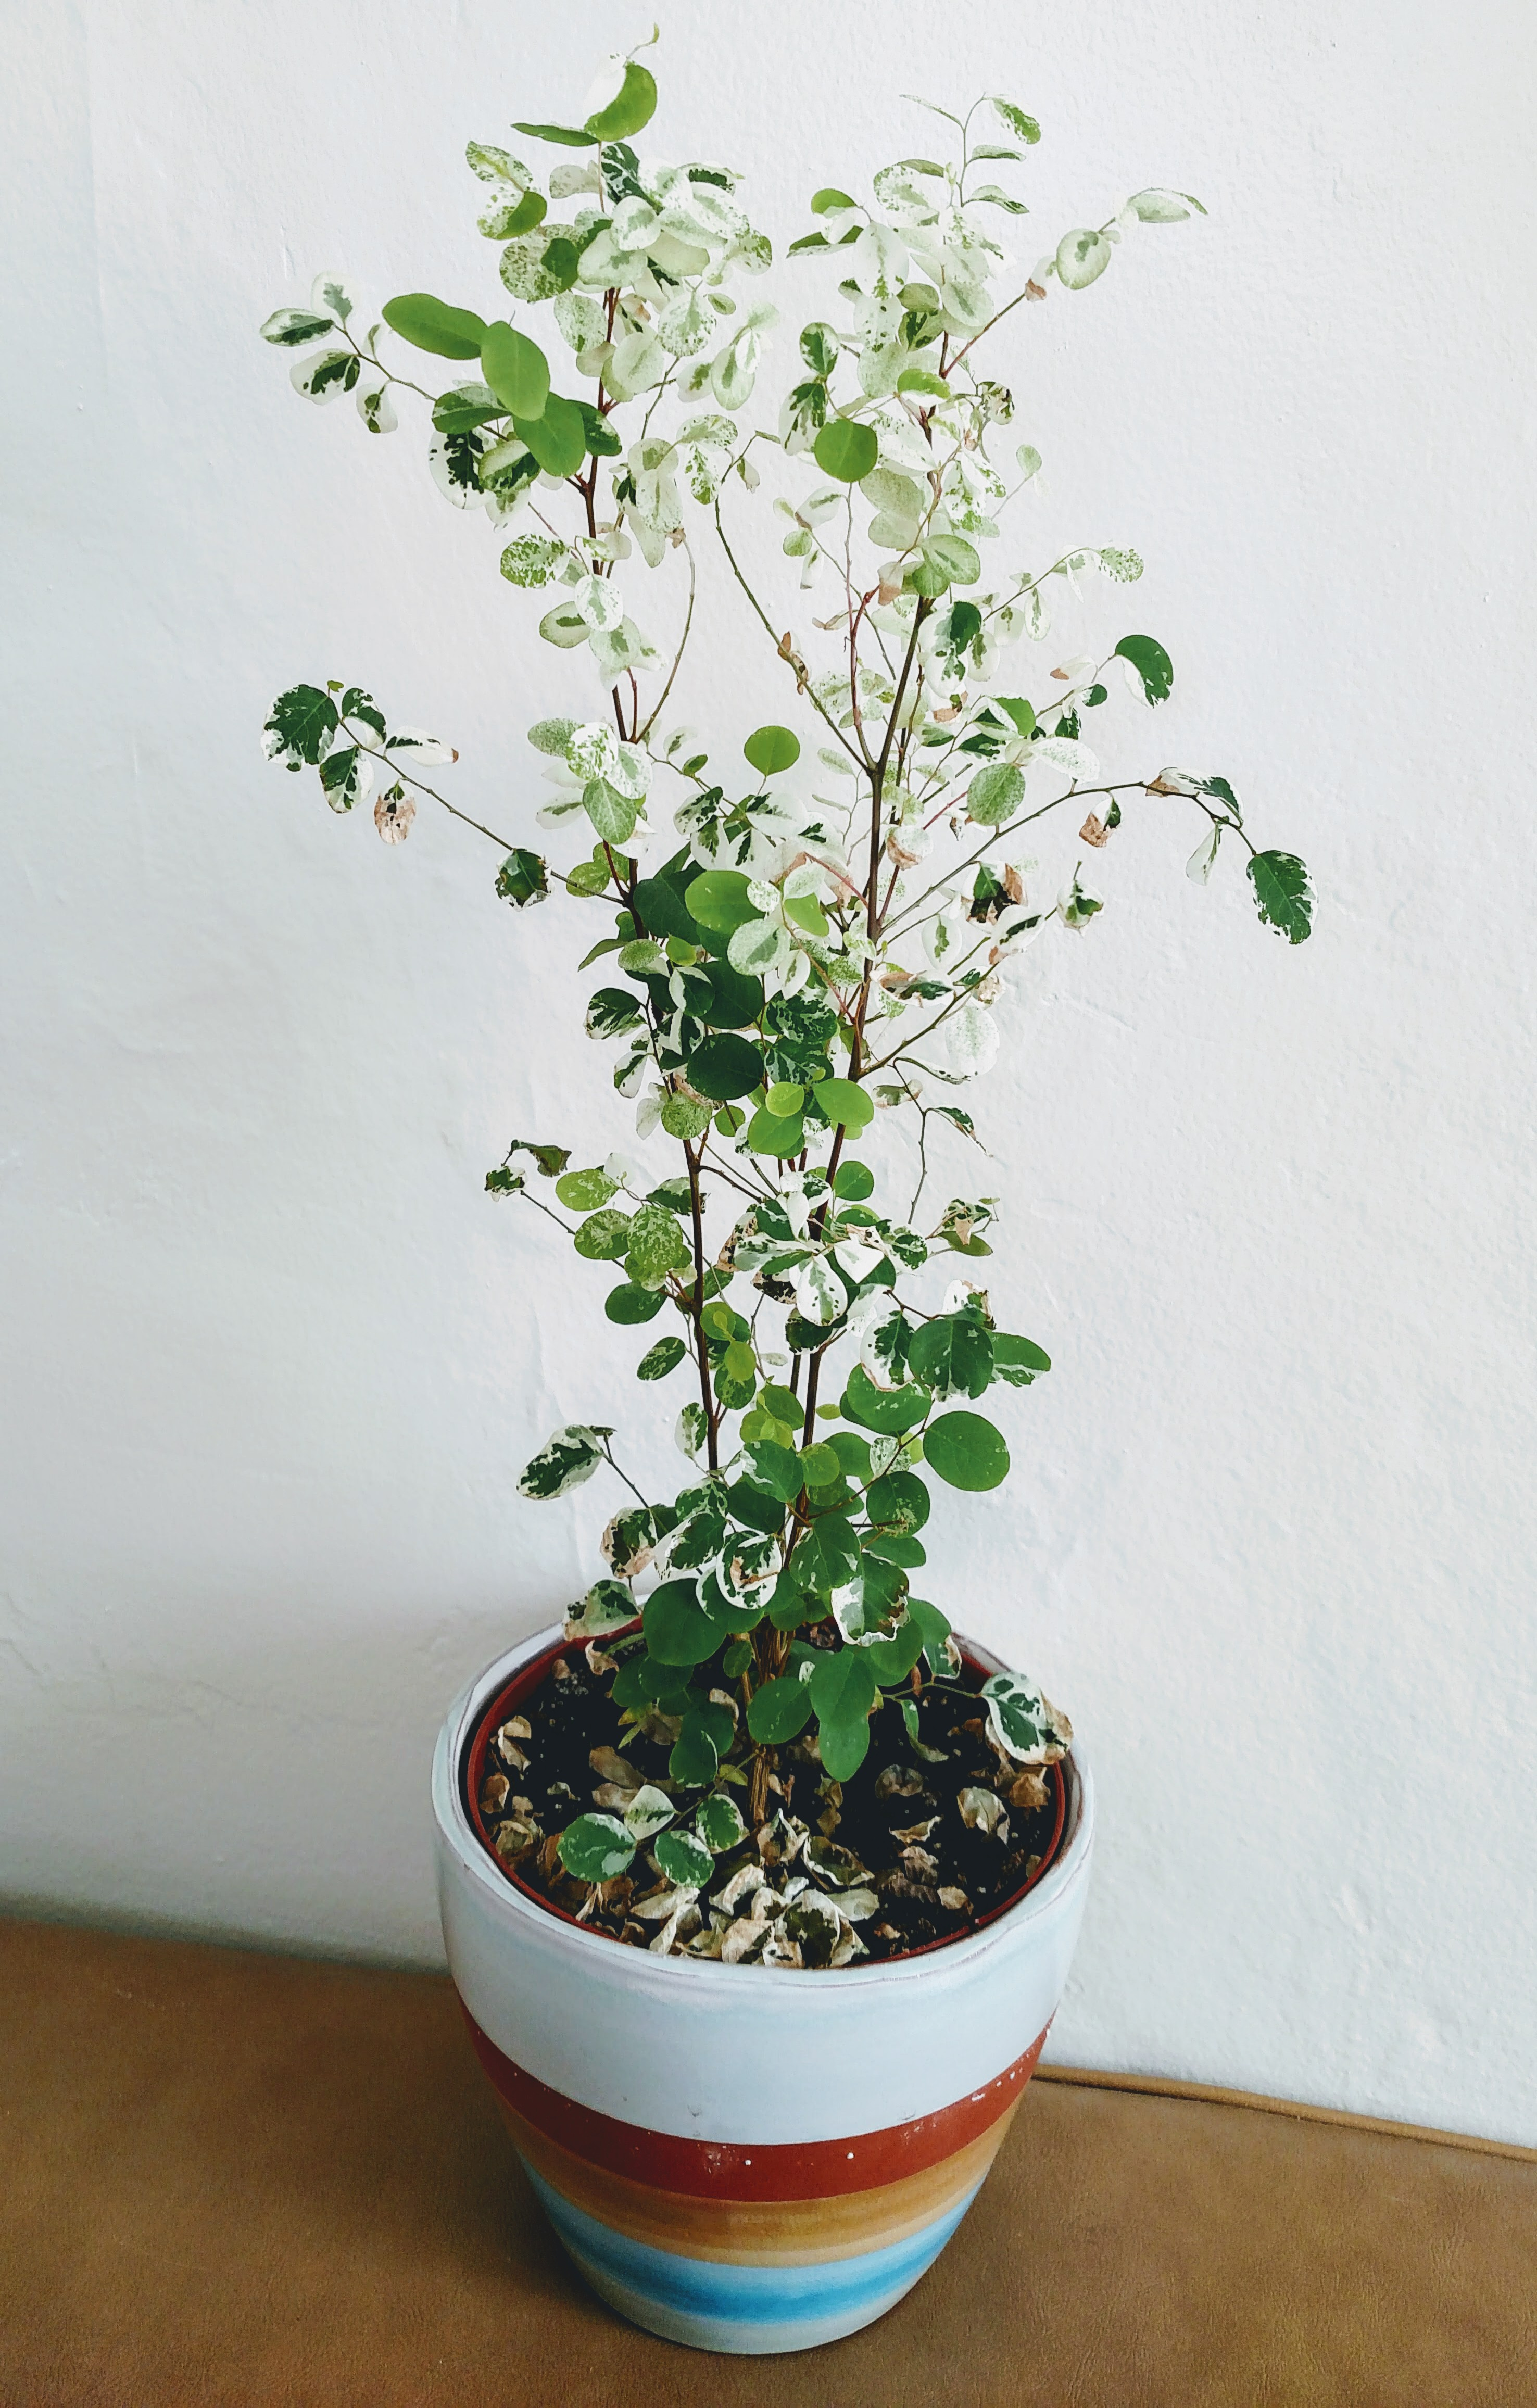 mystery plant